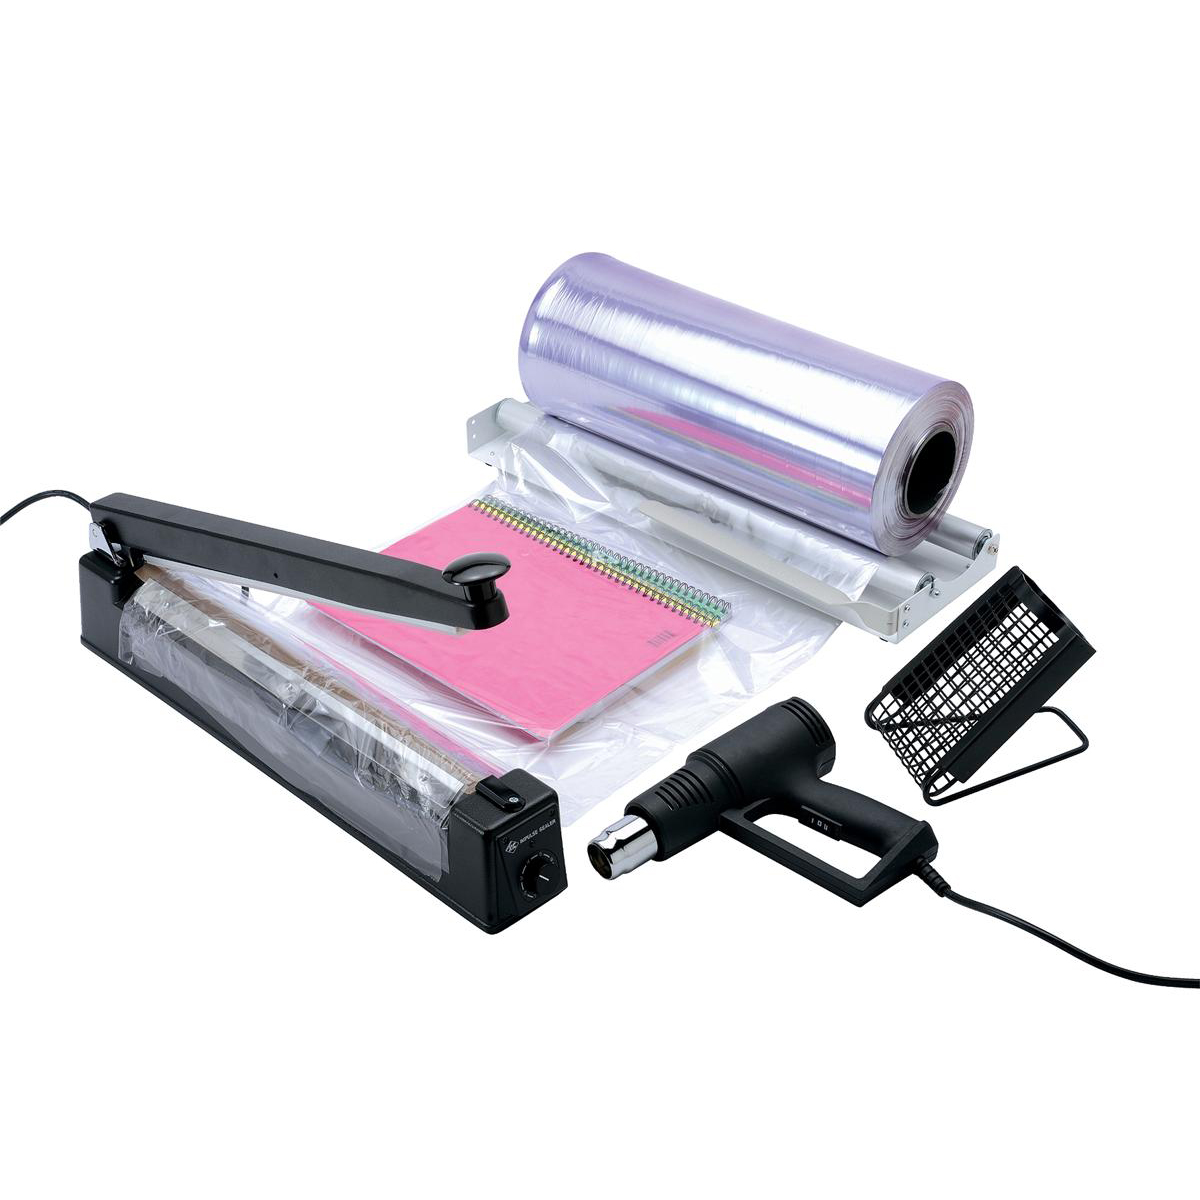 Shrink Wrap System with Hot Air Blower and Unrolling Device